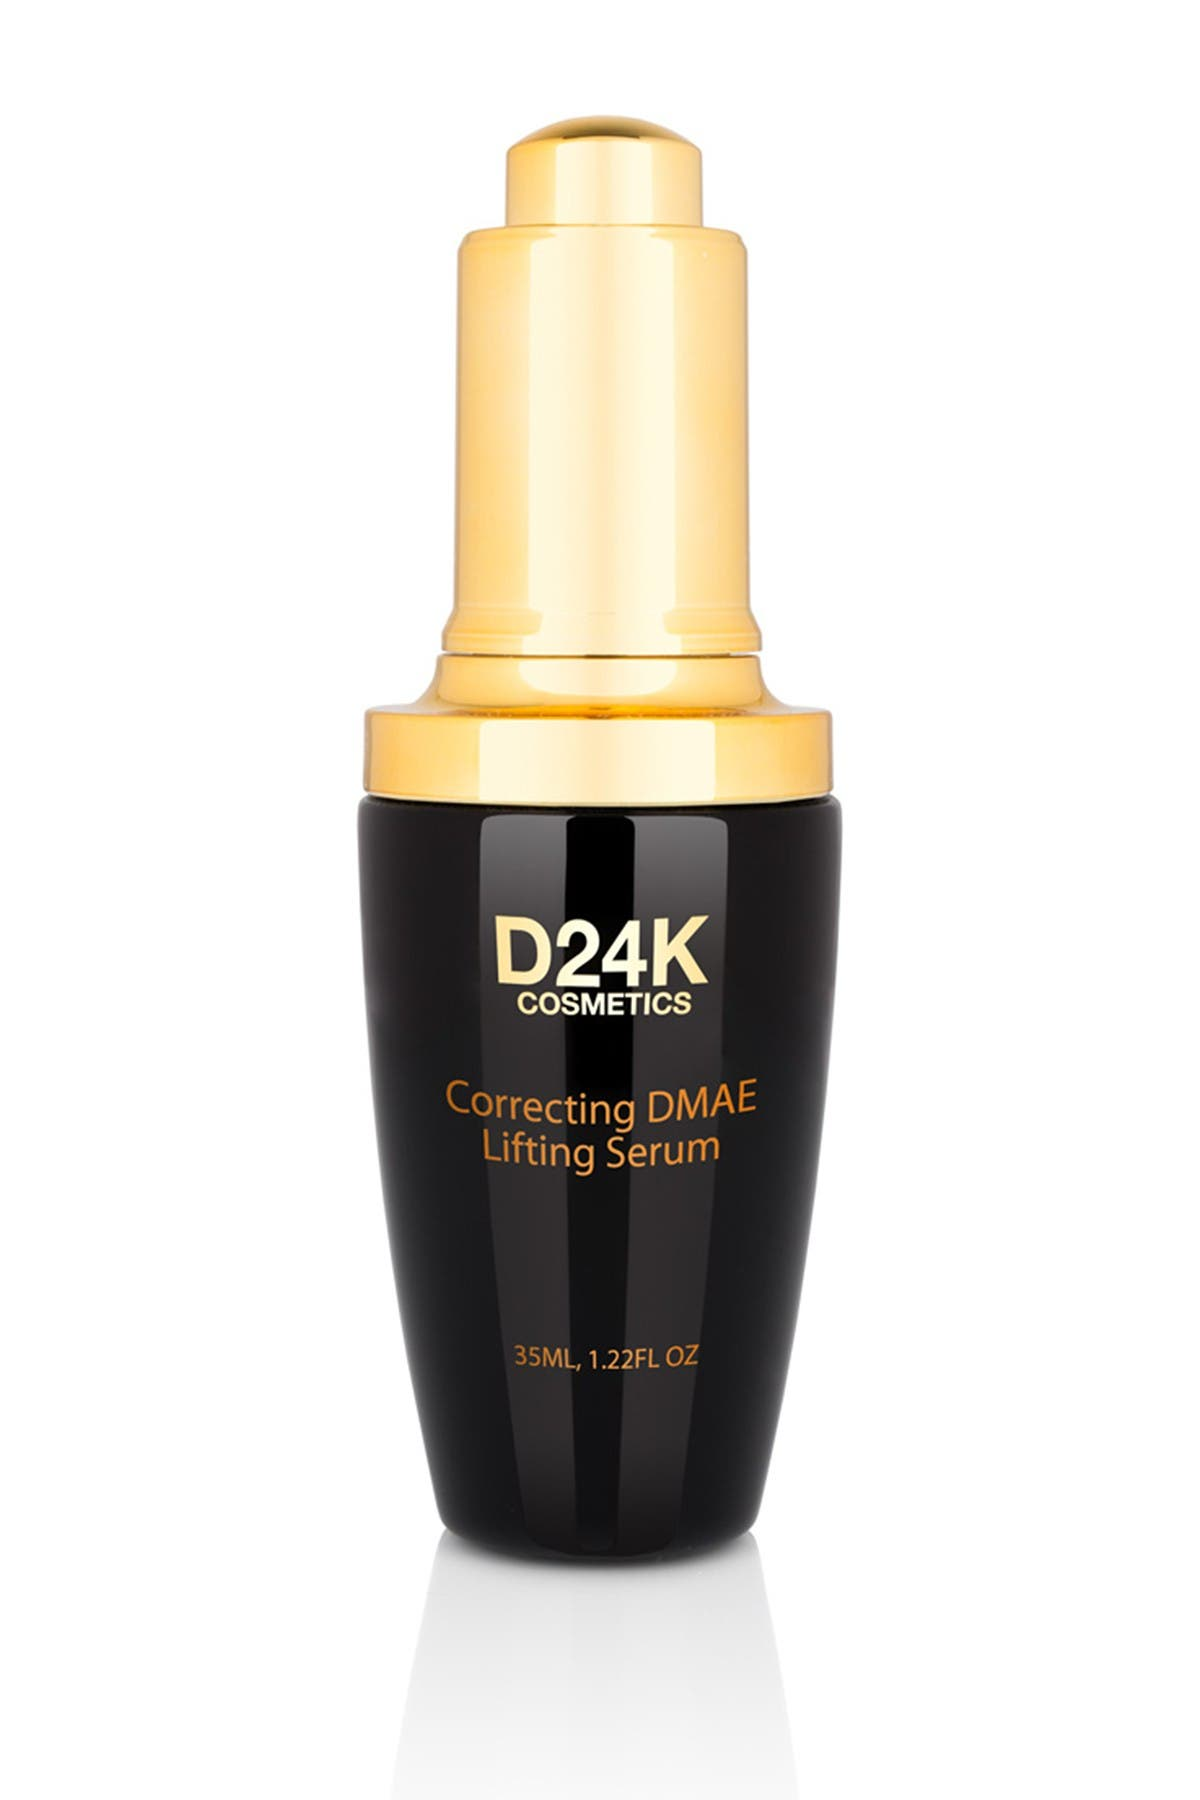 Image of Yuka Skincare Correcting DMAE Lifting Serum